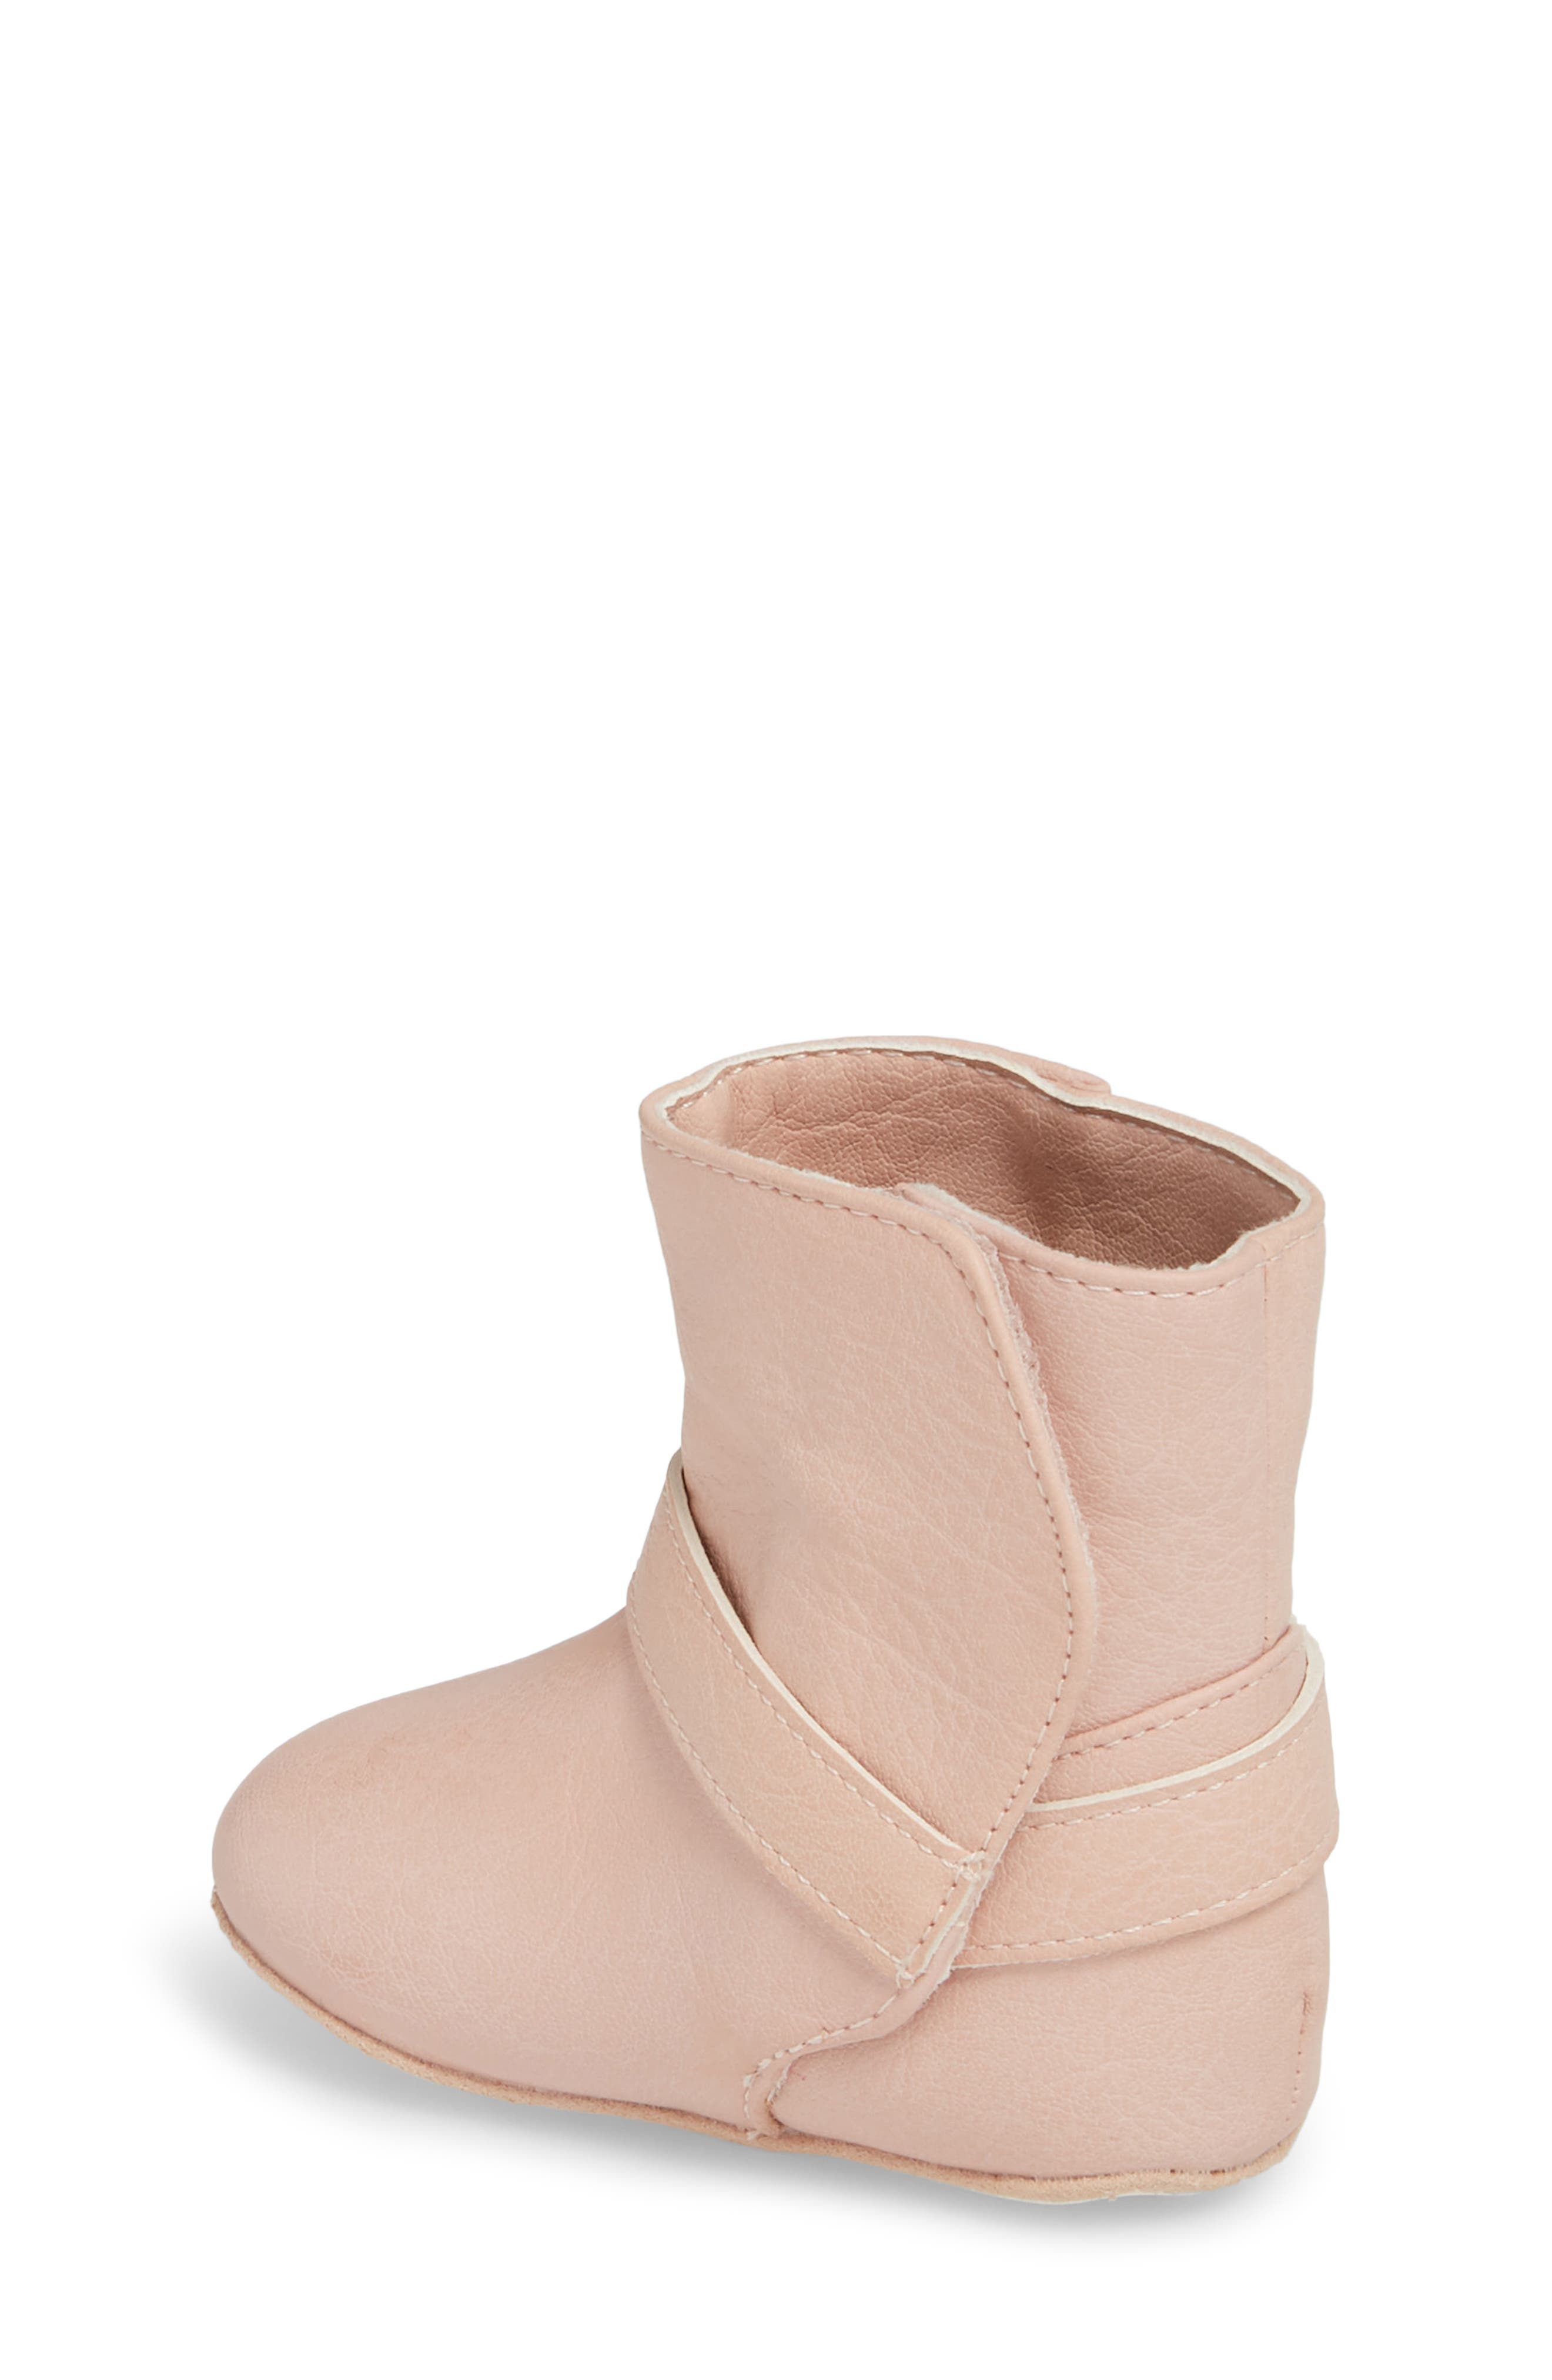 Harness Boot Crib Shoe,                             Alternate thumbnail 2, color,                             Baby Pink